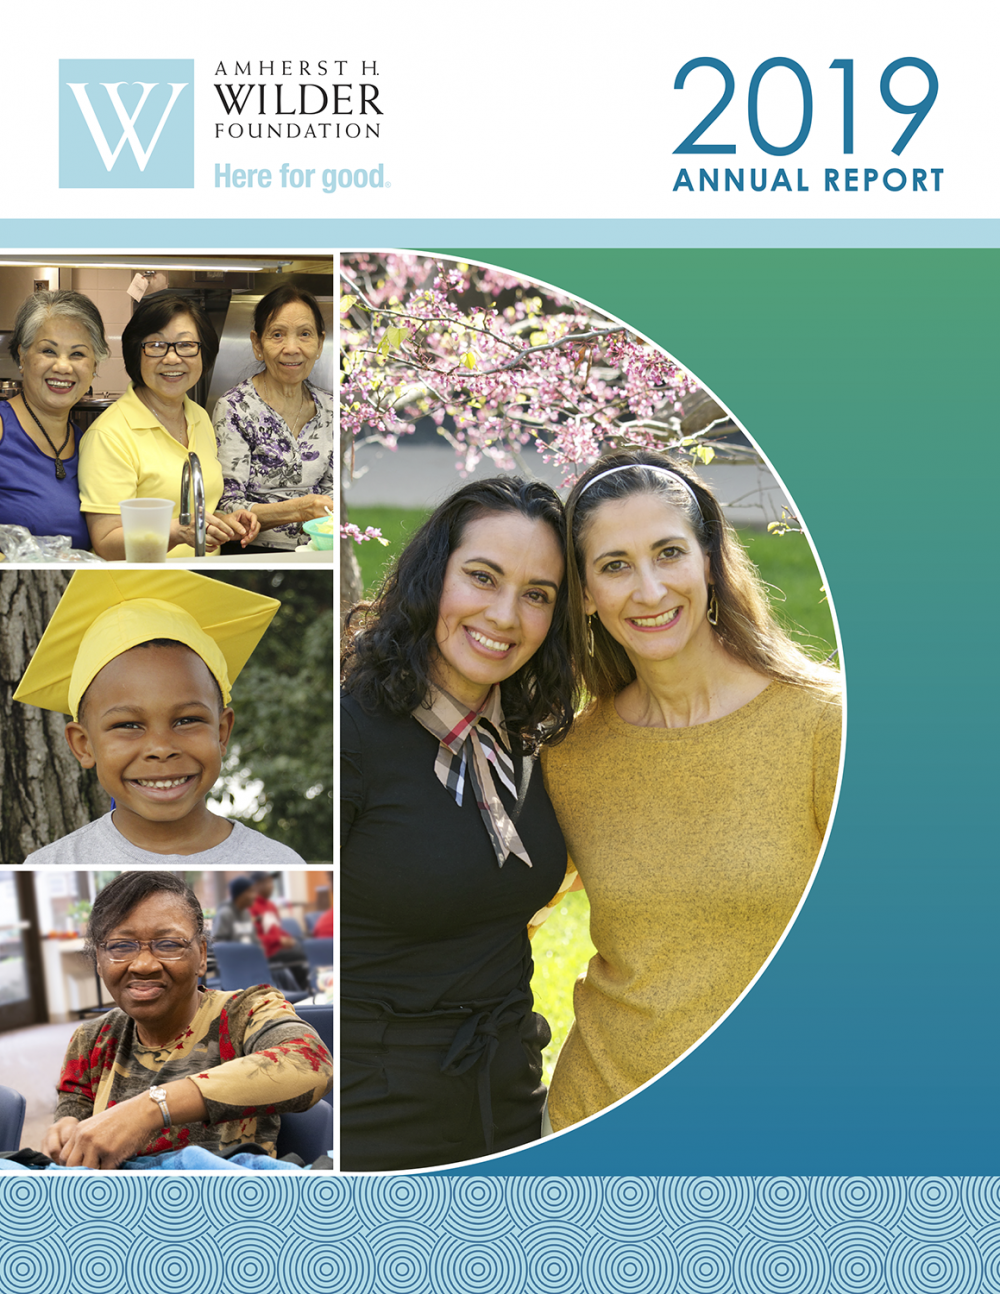 Nonprofit Organization Amherst H. Wilder Foundation 2019 Annual Report